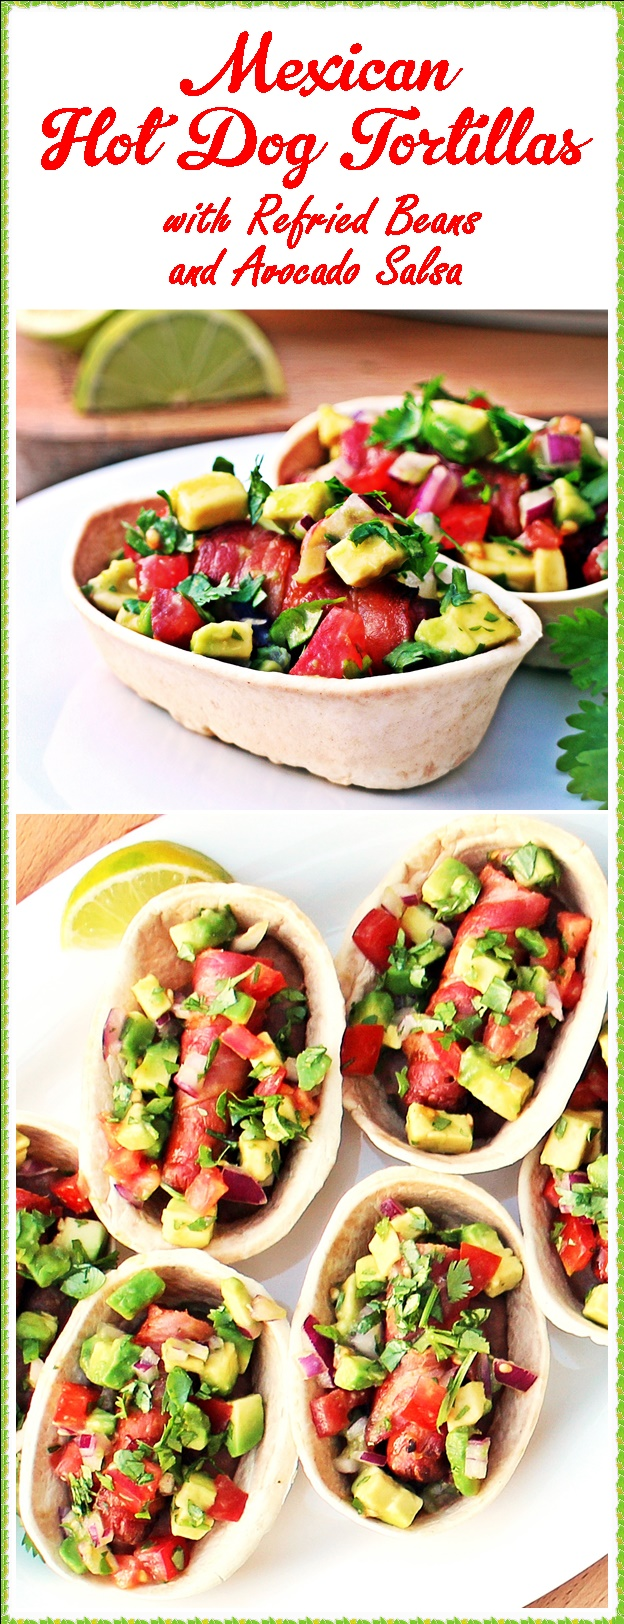 Mexican Hot Dog Tortillas - Fab Food 4 All